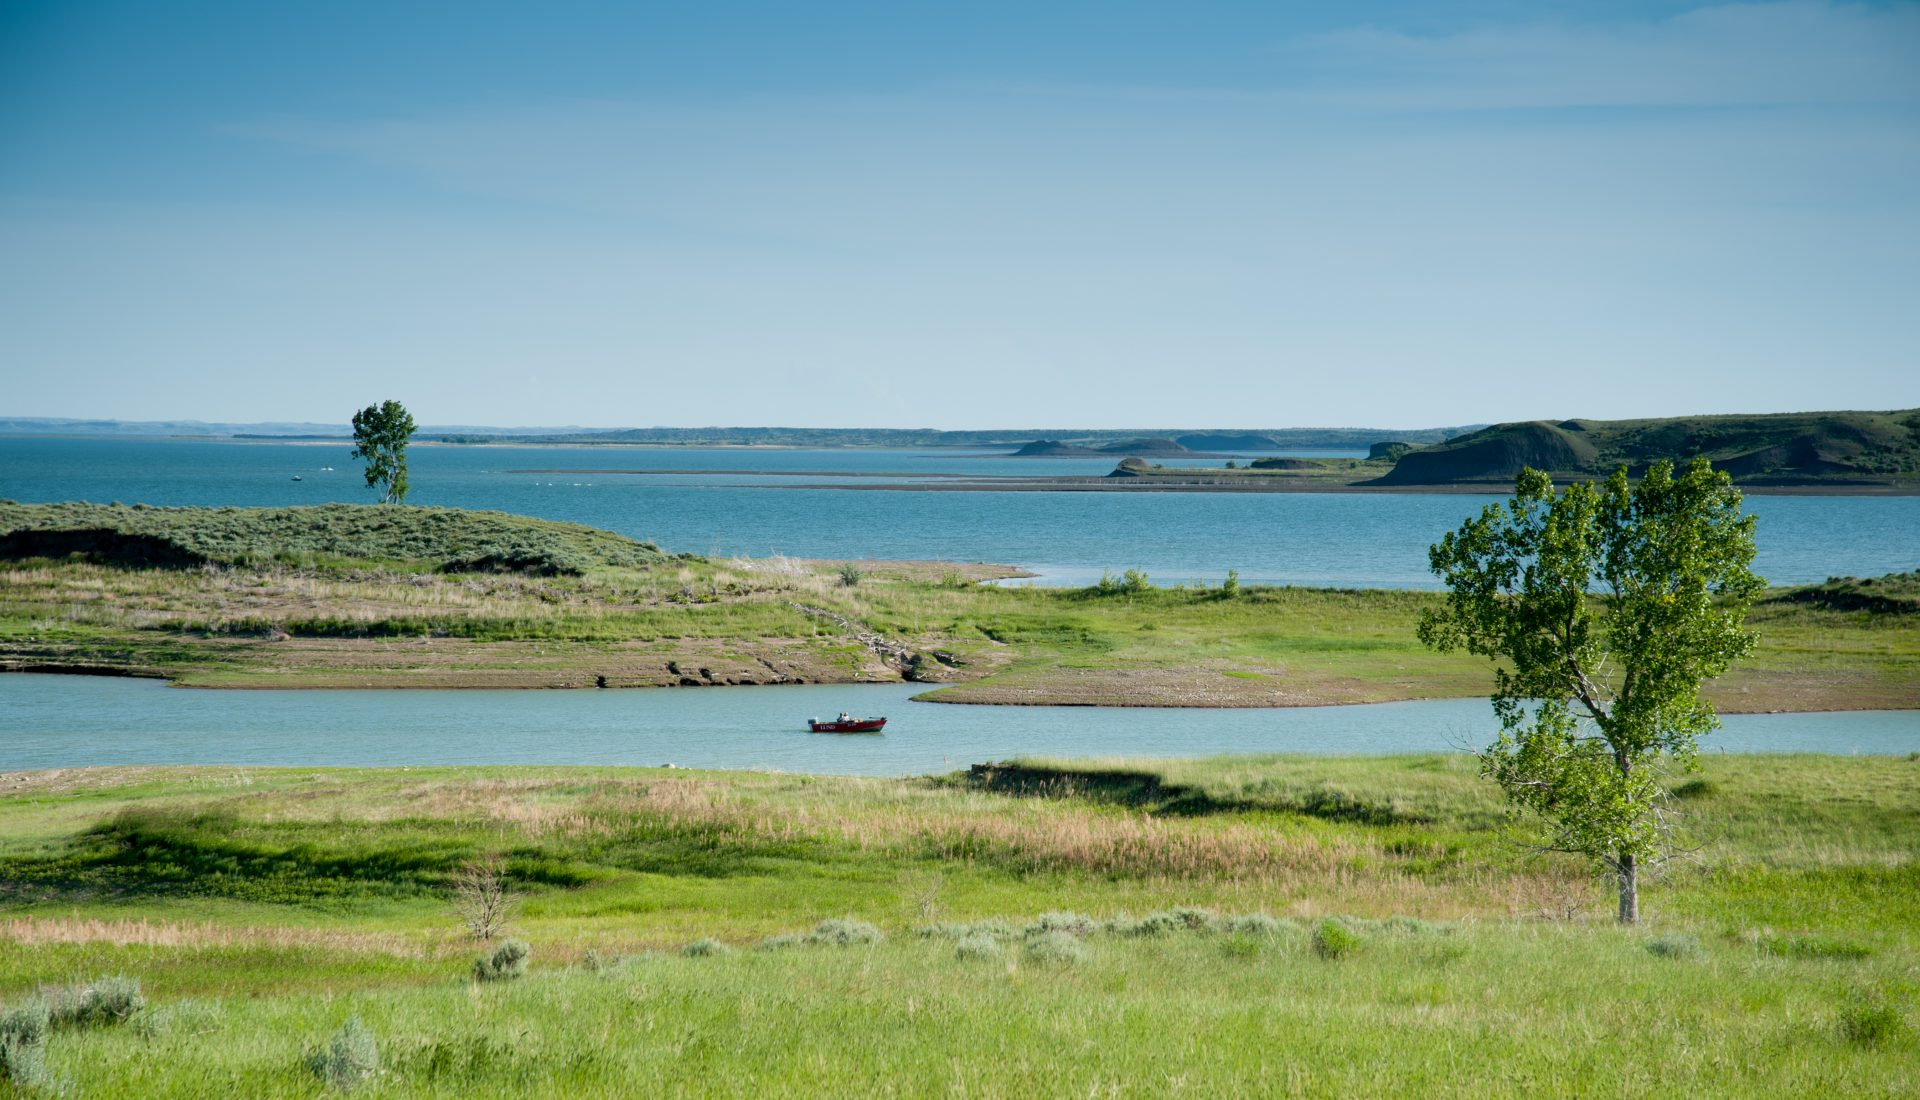 Fort Peck Lake, Missouri River Country